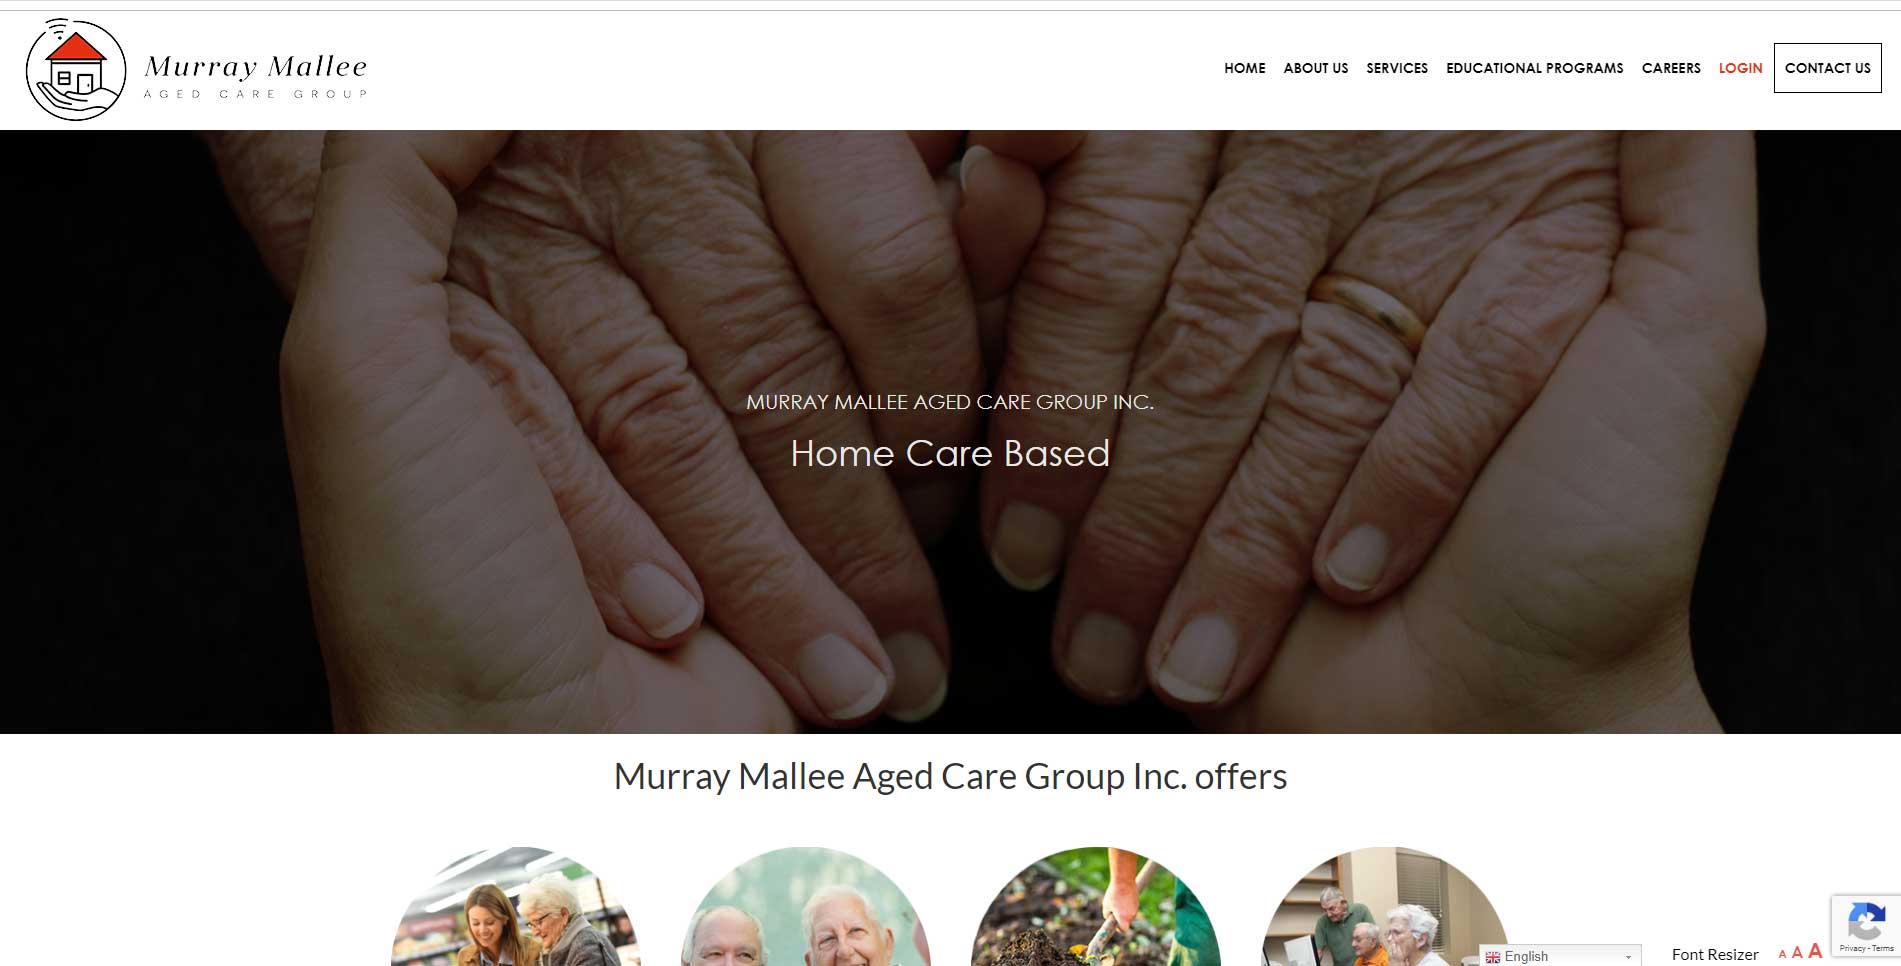 Murry Mallee Aged Care Marketing